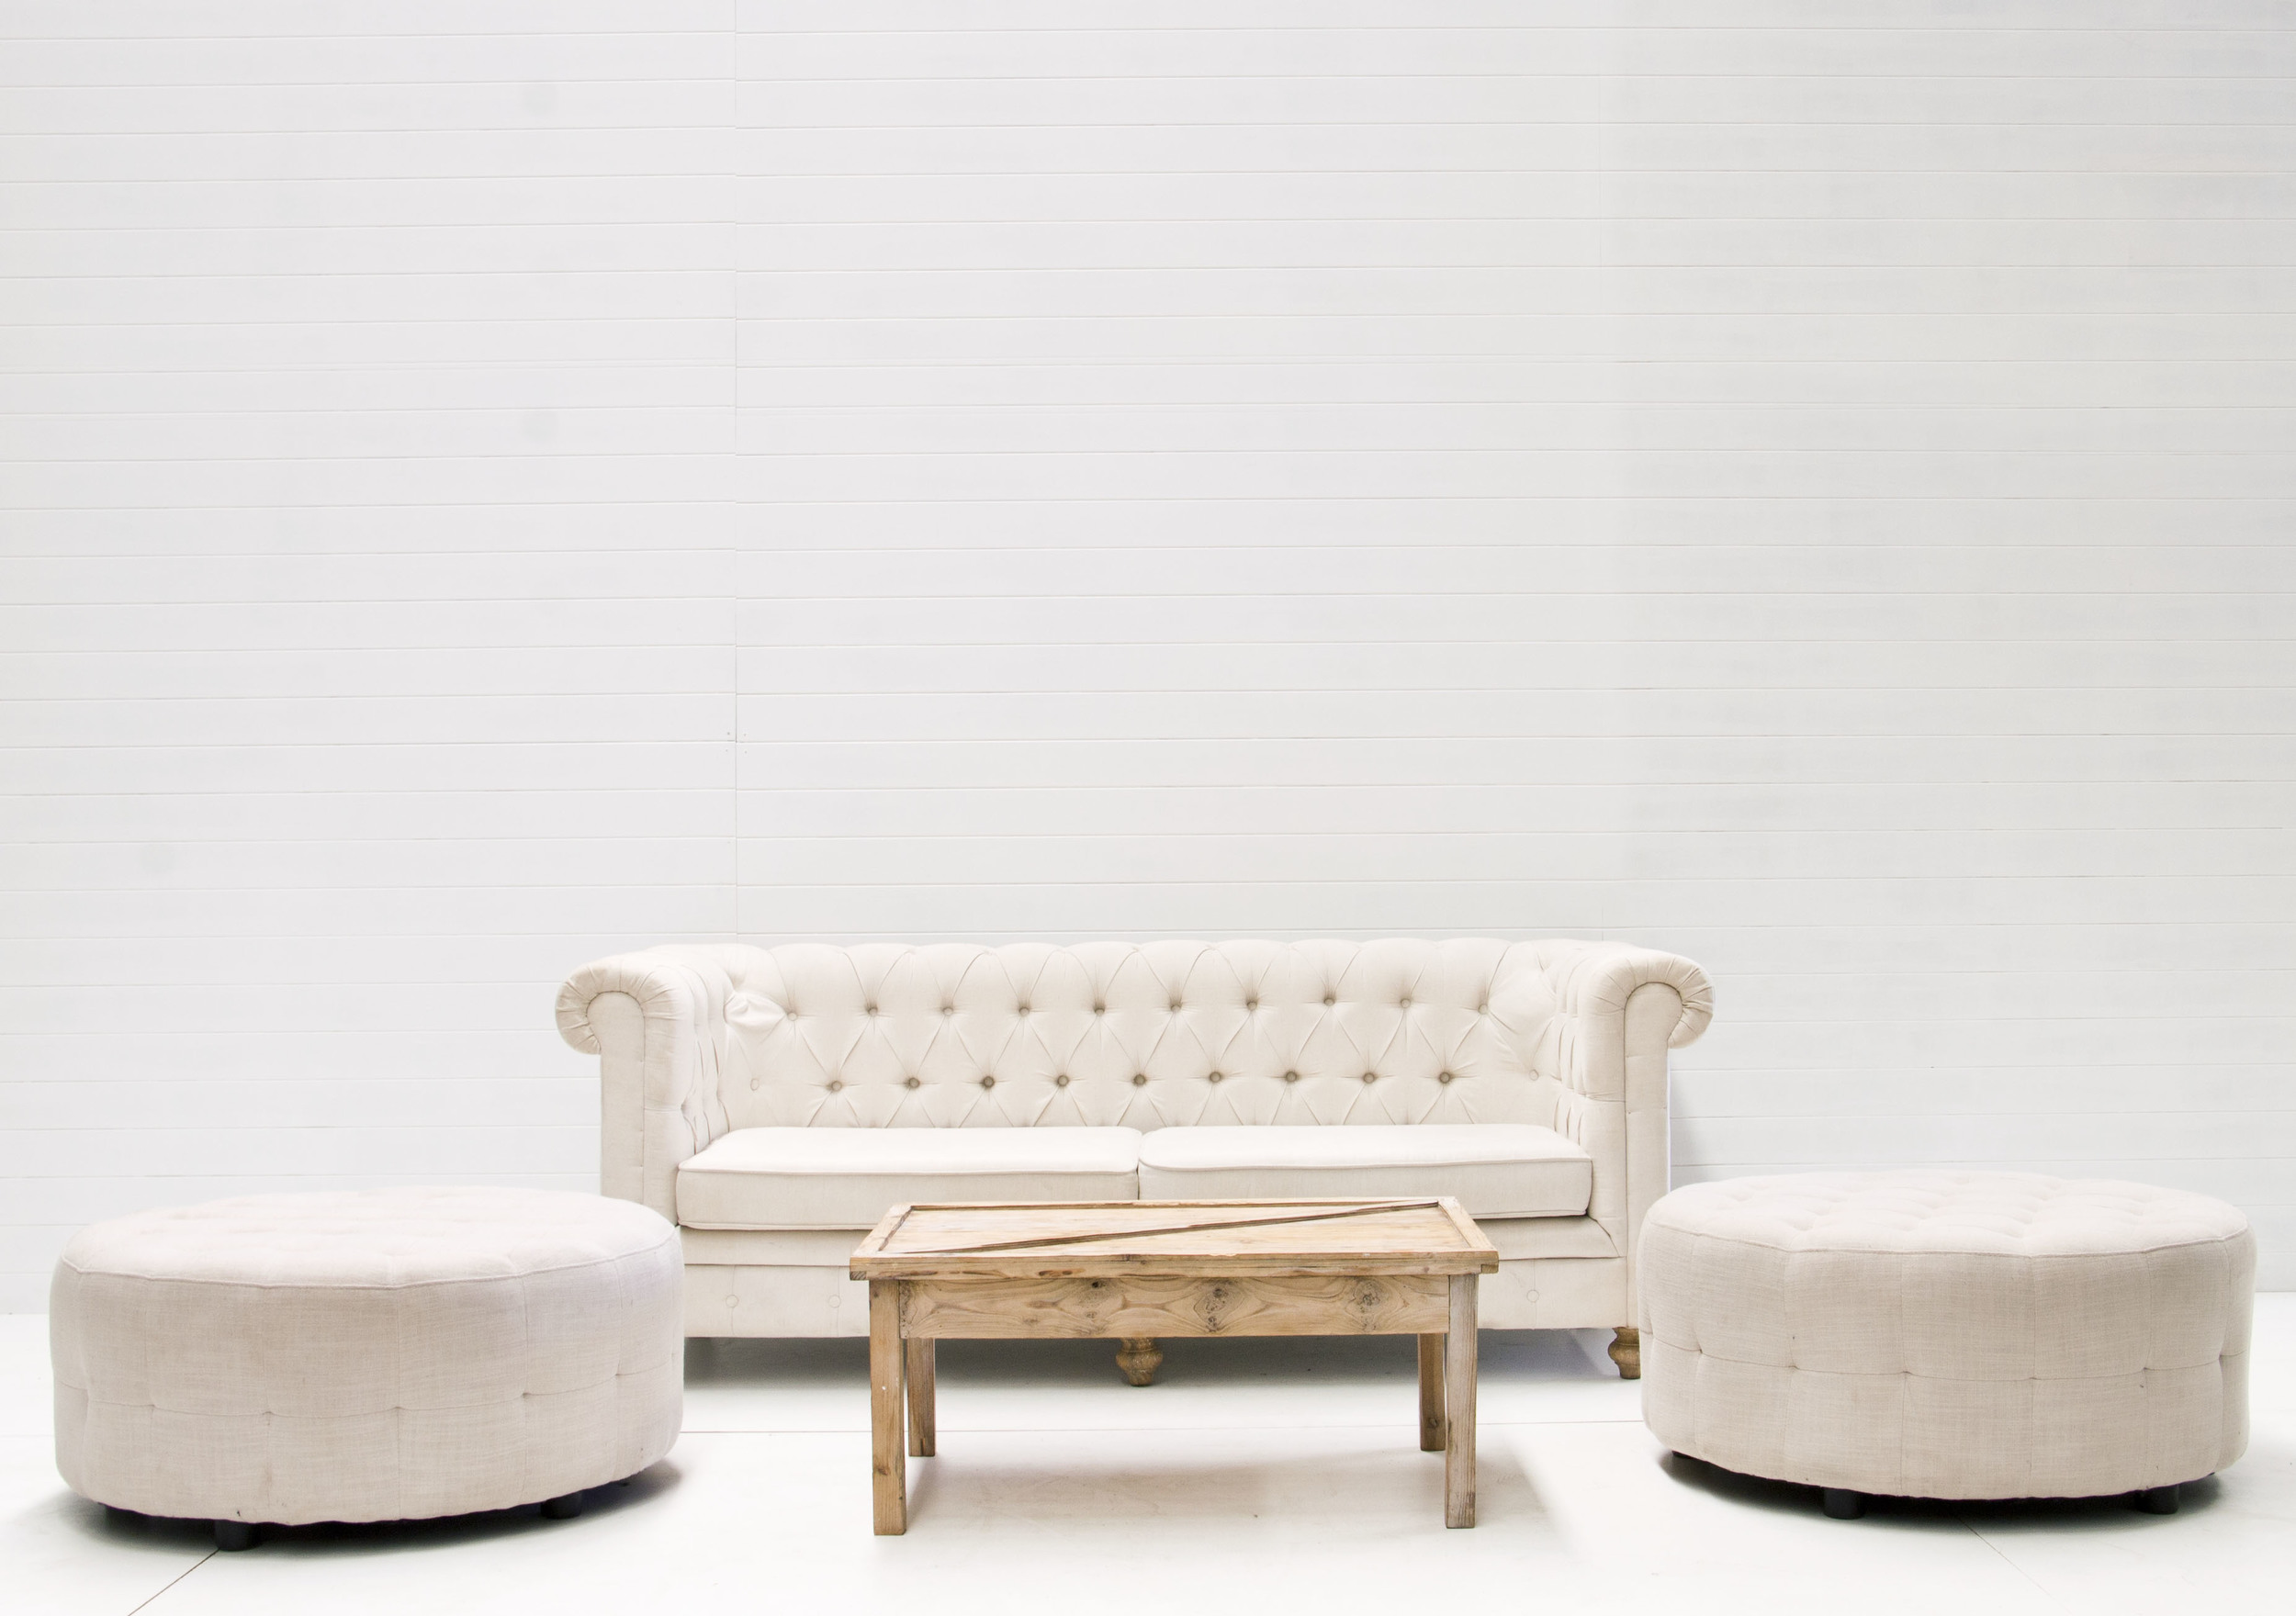 French sofa ottoman package.jpg